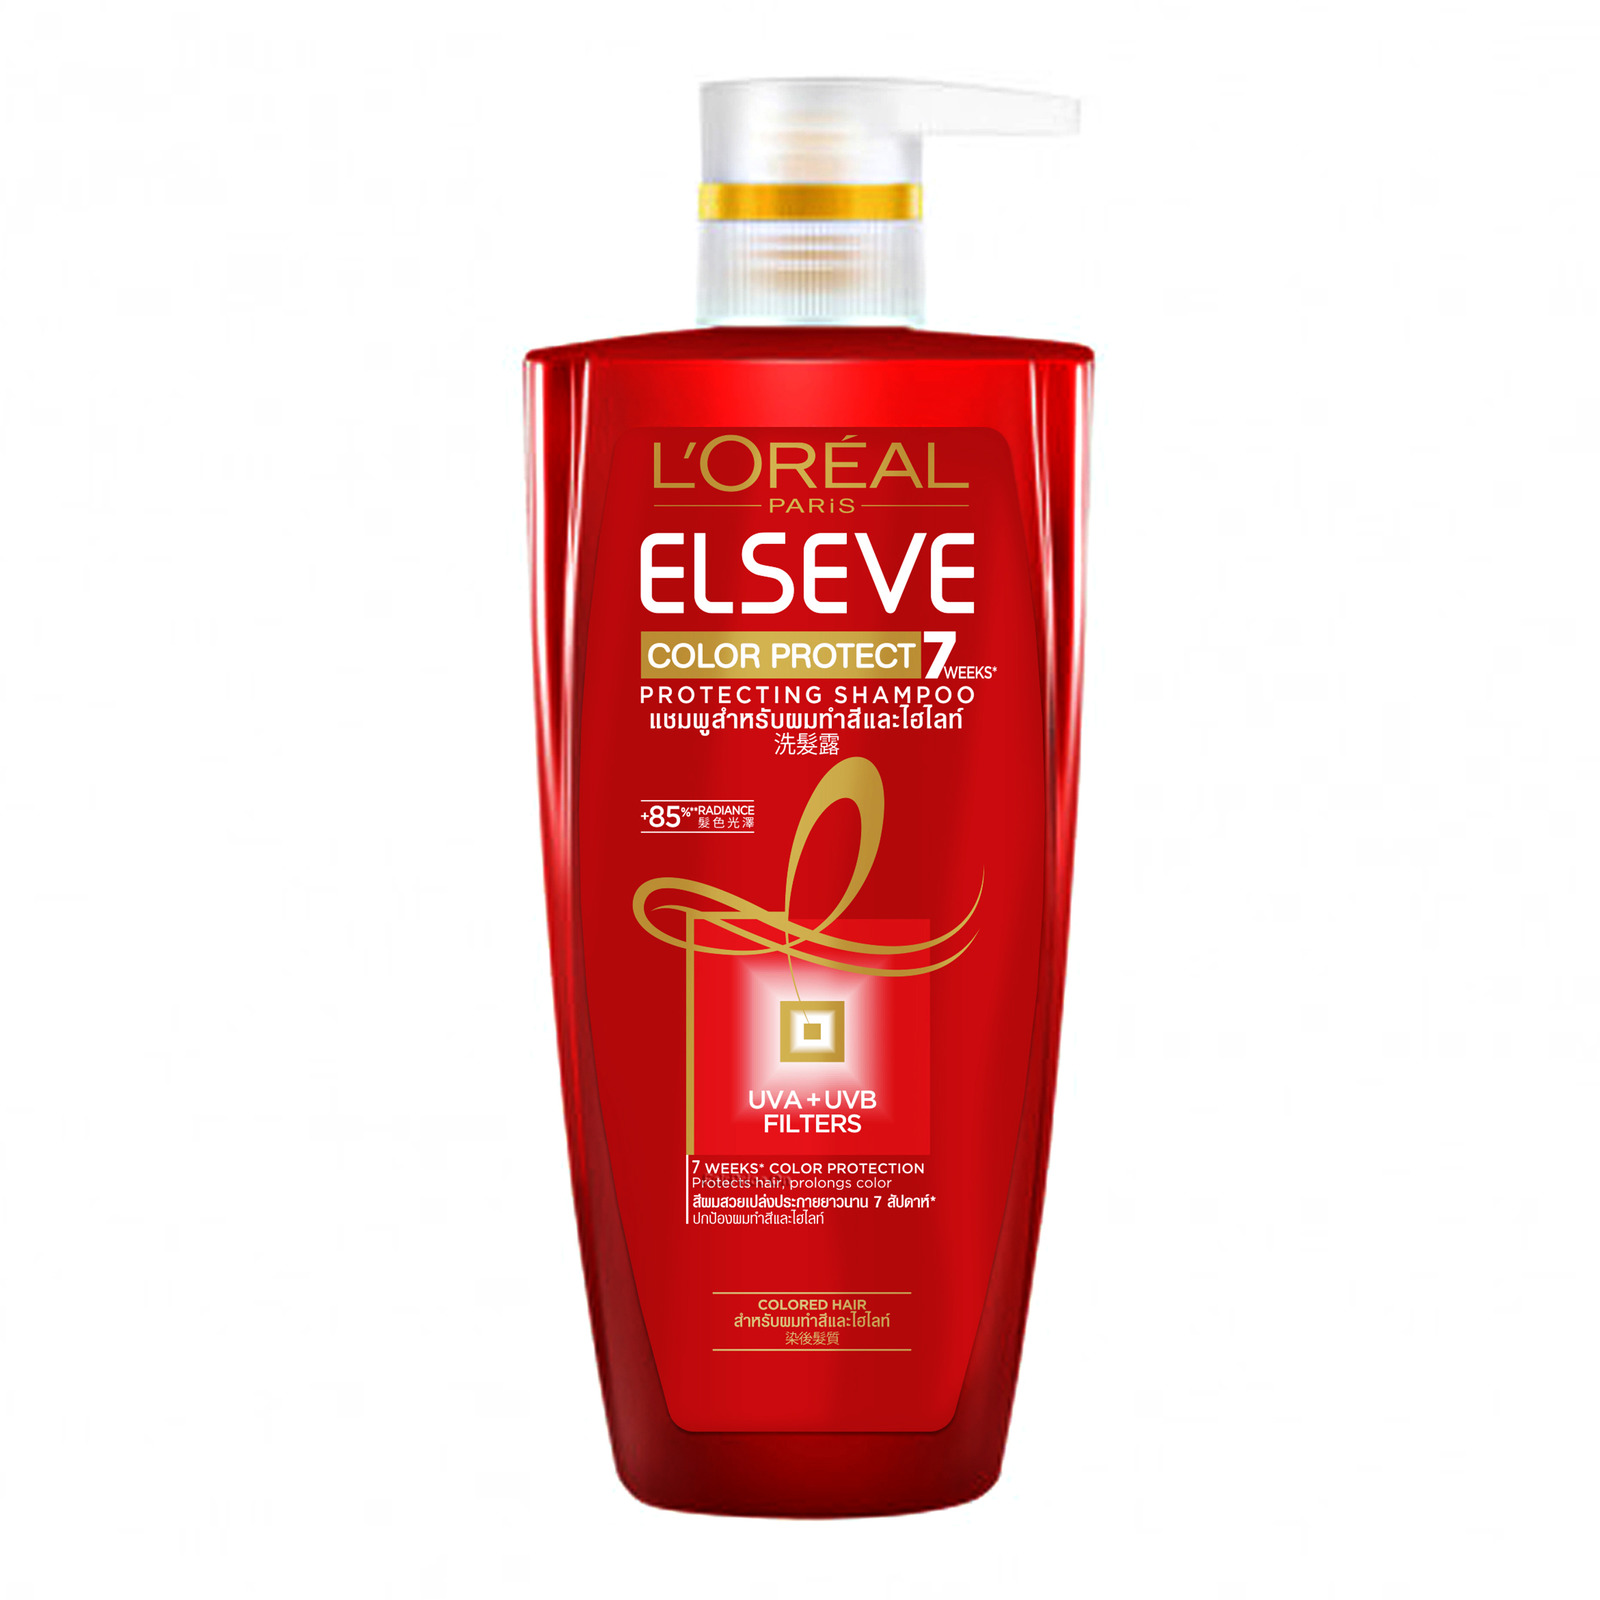 L'Oreal Paris Elseve Shampoo - Color Protect